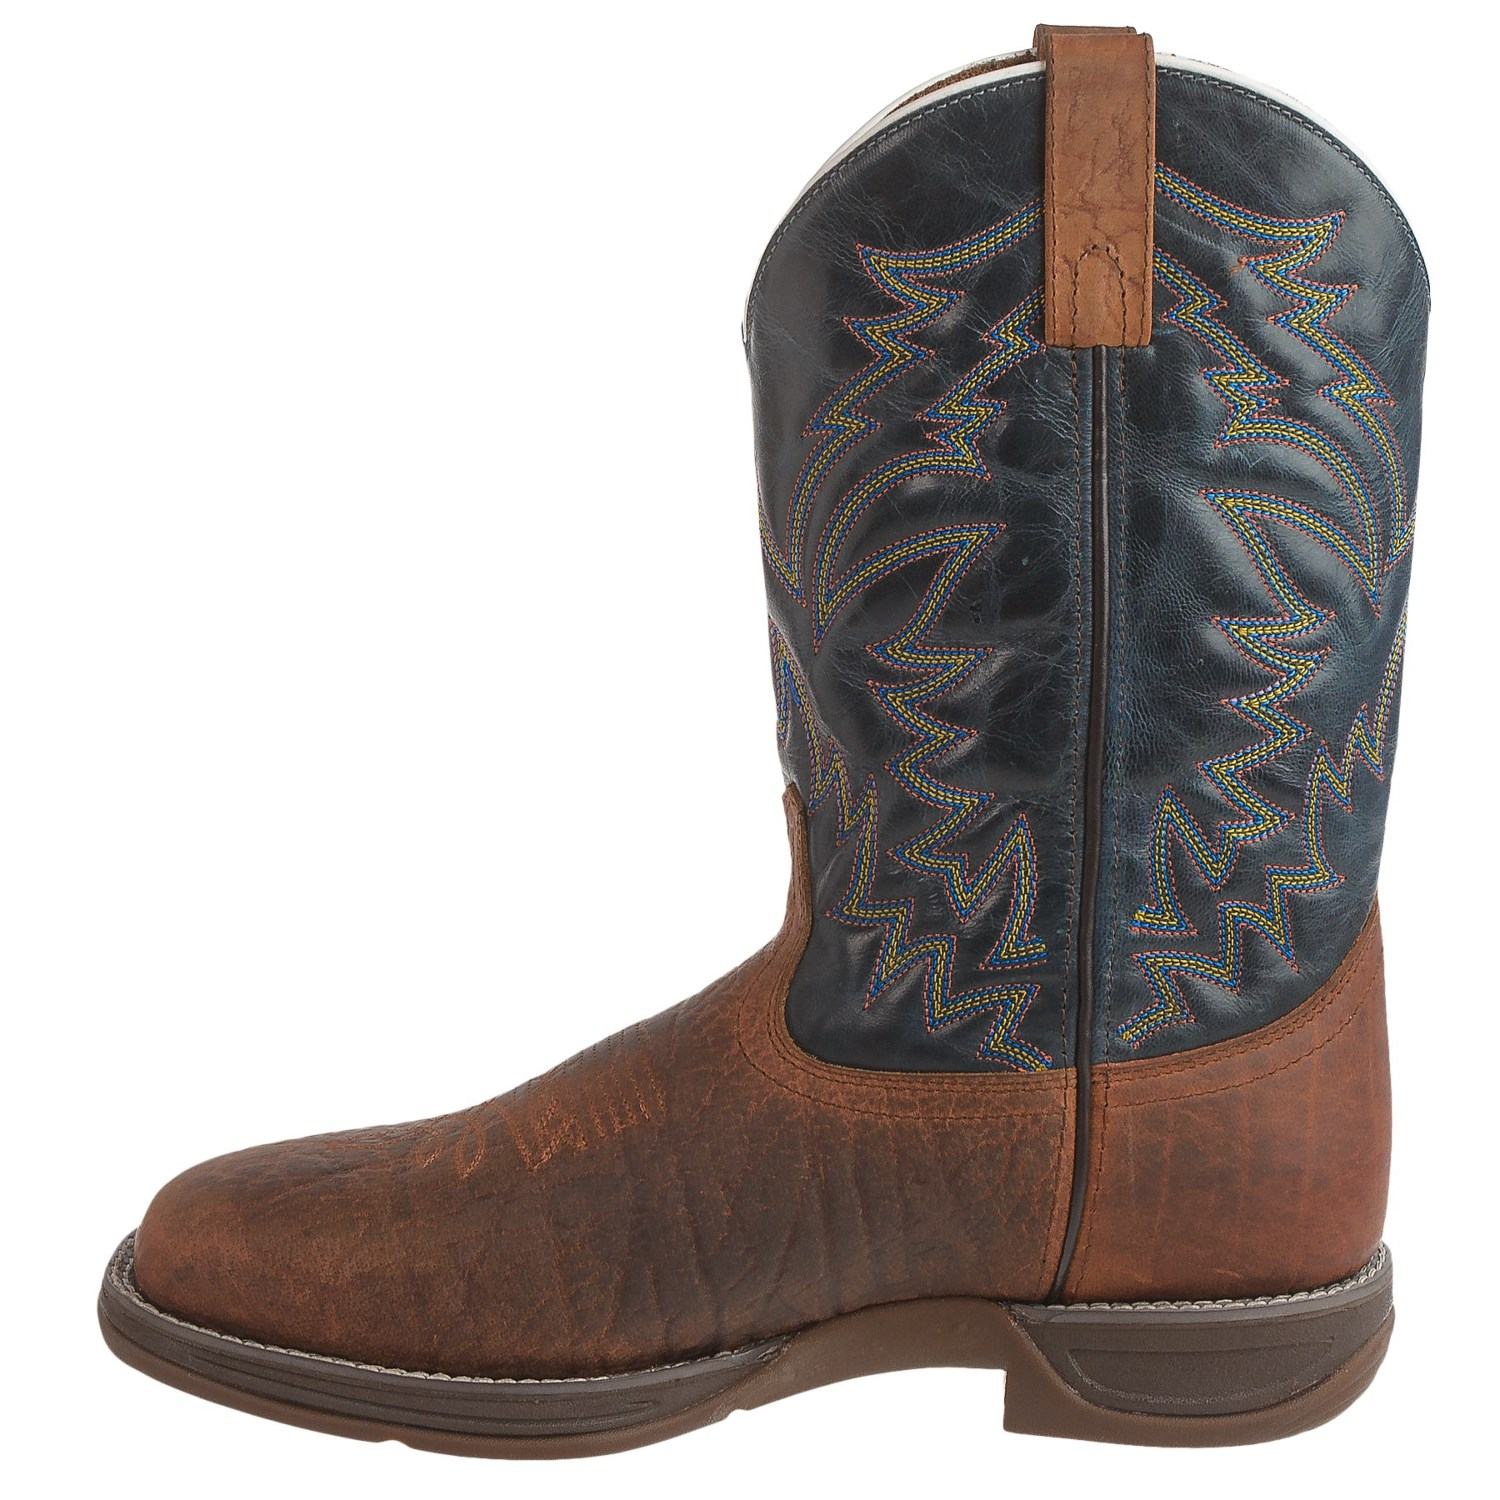 Laredo Great Bend Cowboy Boots (For Men) - Save 43%